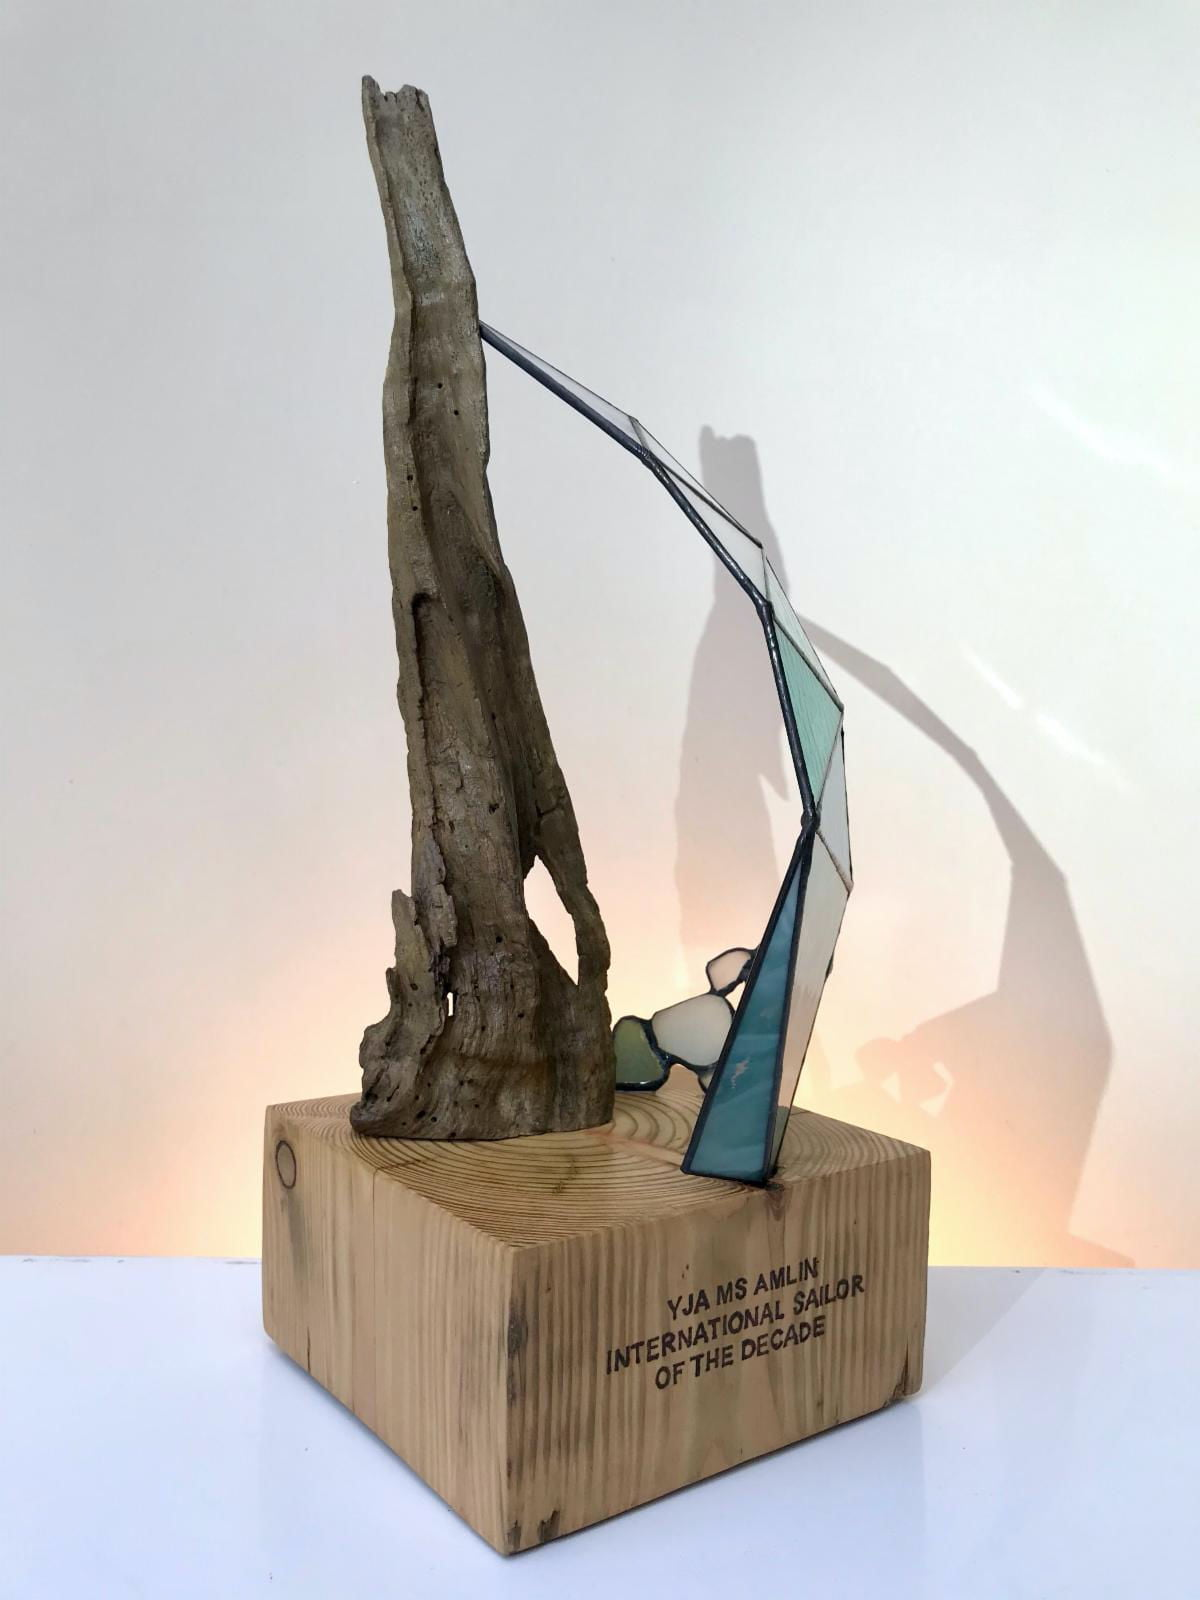 Shortlist and Trophy revealed for the YJA MS Amlin  'International Sailor of the Decade'